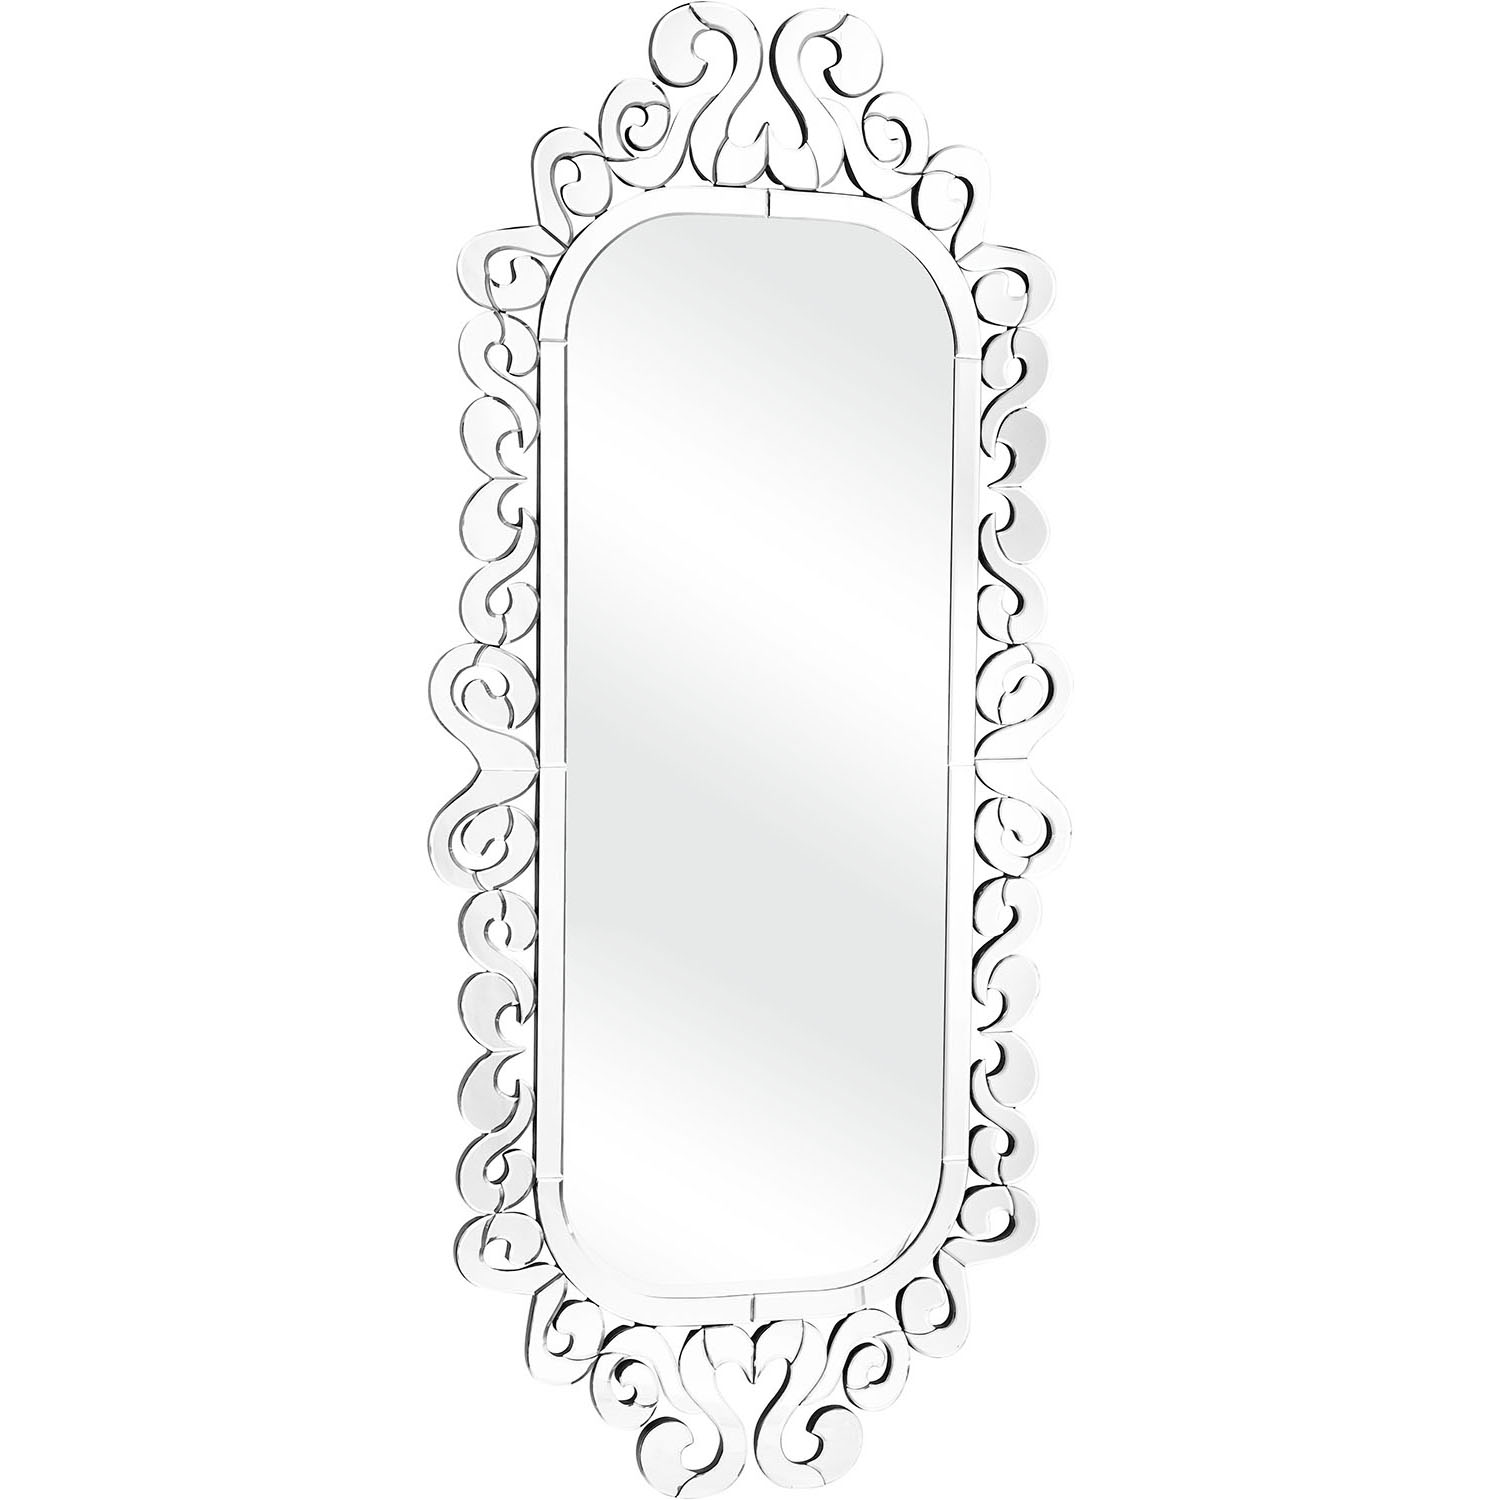 Check out the Pure Shiva Mirror Product Photo